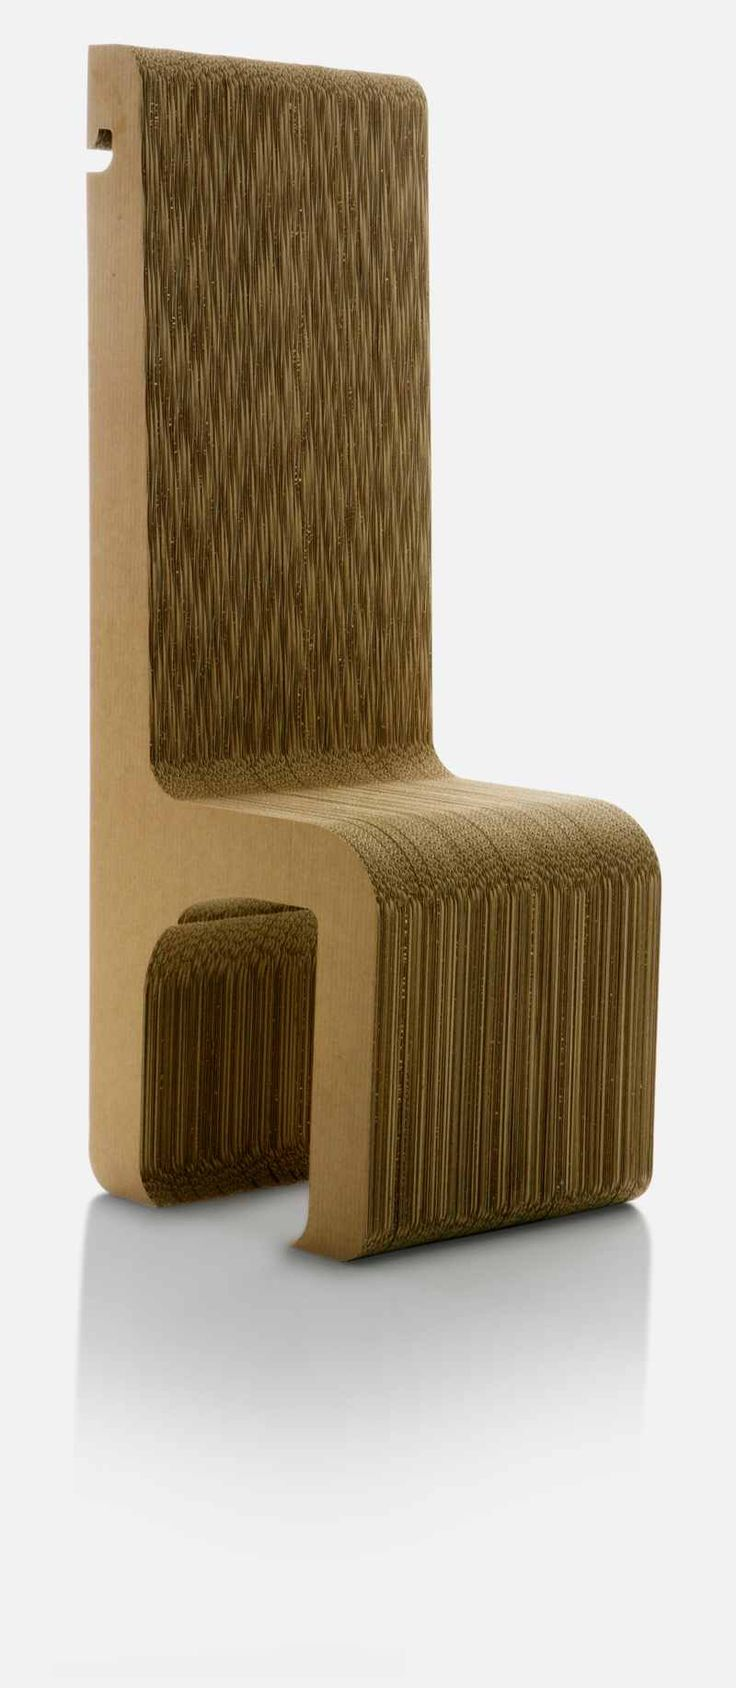 Marvelous Simple Chair In Shape Like A Throne Photo